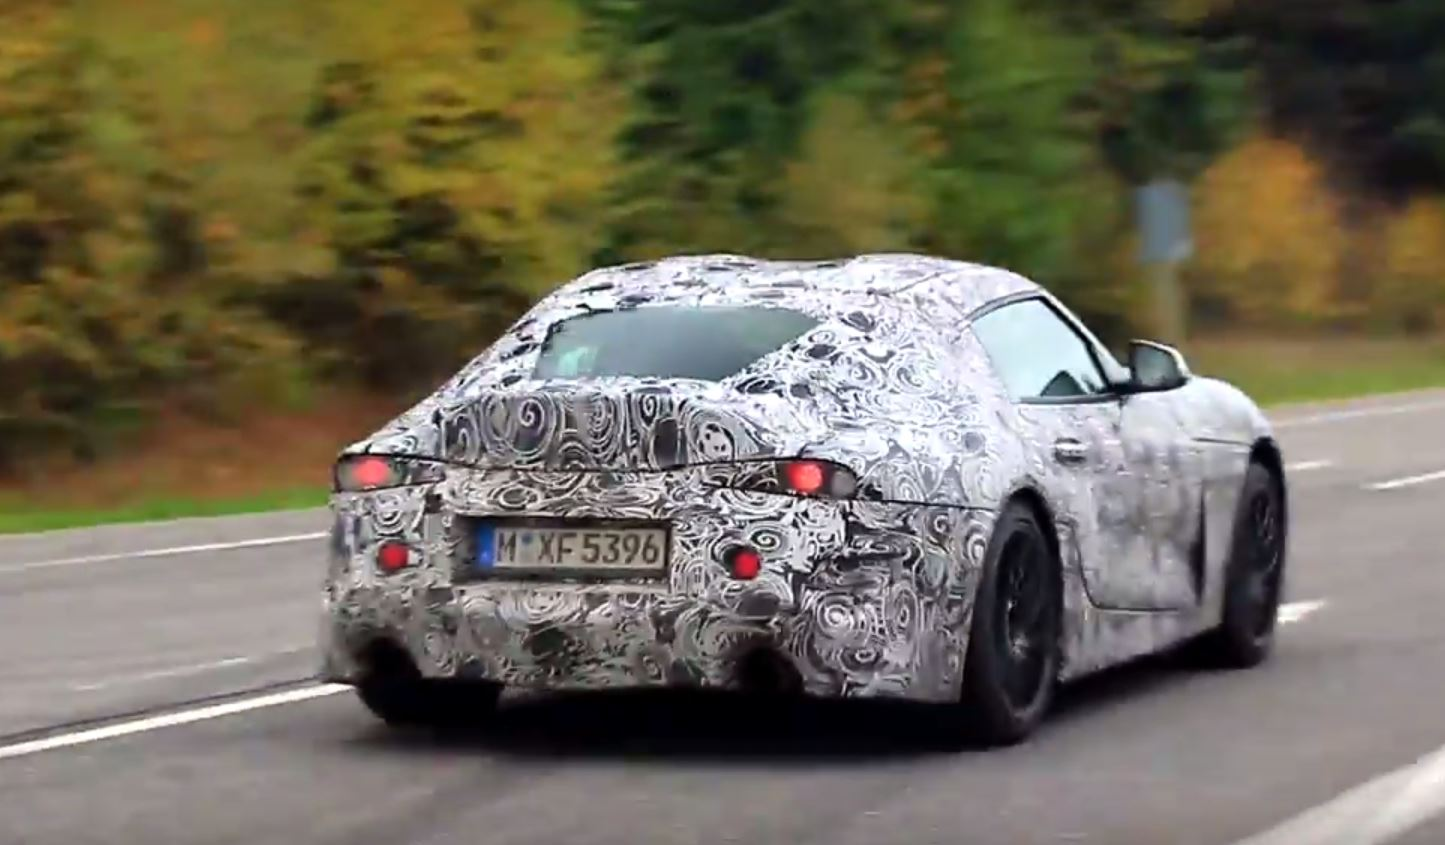 Toyota Ft 1 >> 2019 Toyota Supra Sounds Angry in Nurburgring Spy Video - autoevolution